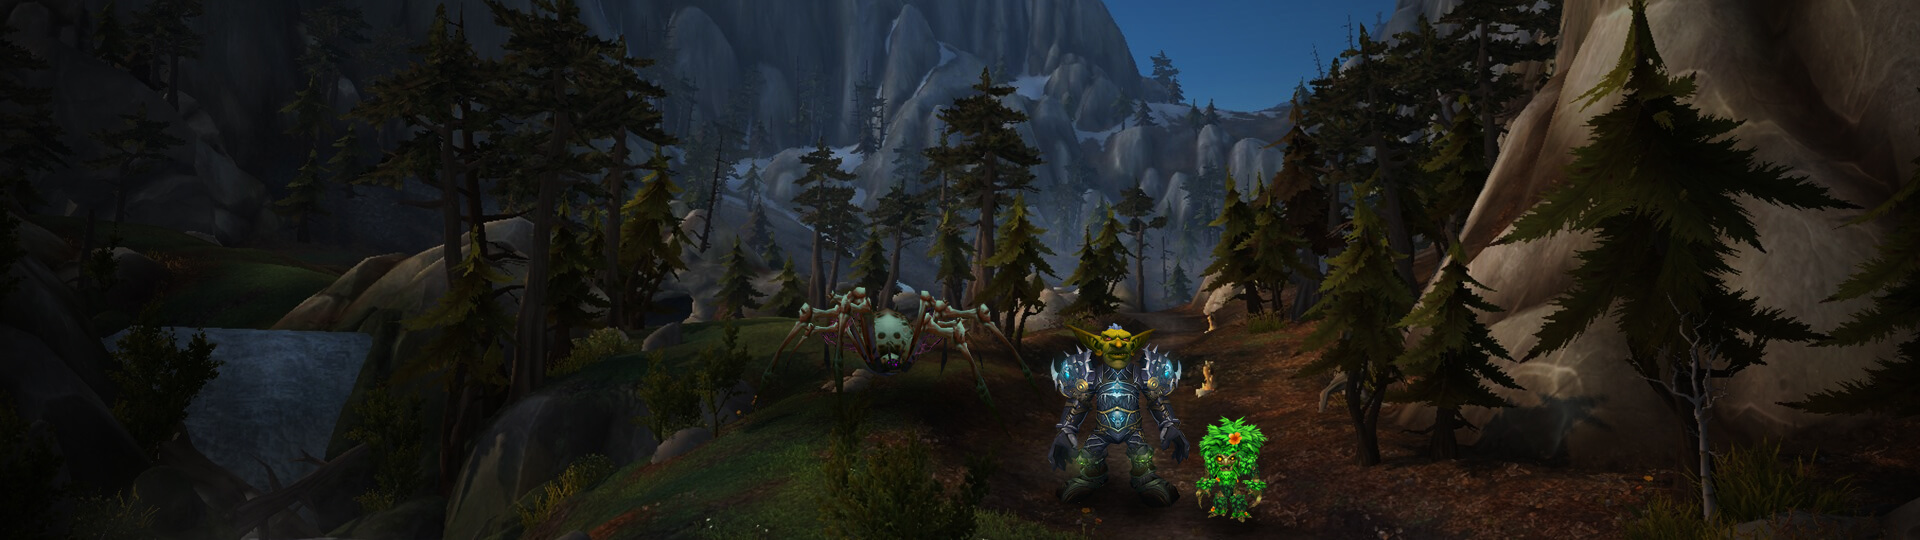 WoW  miscellaneous leveling and items